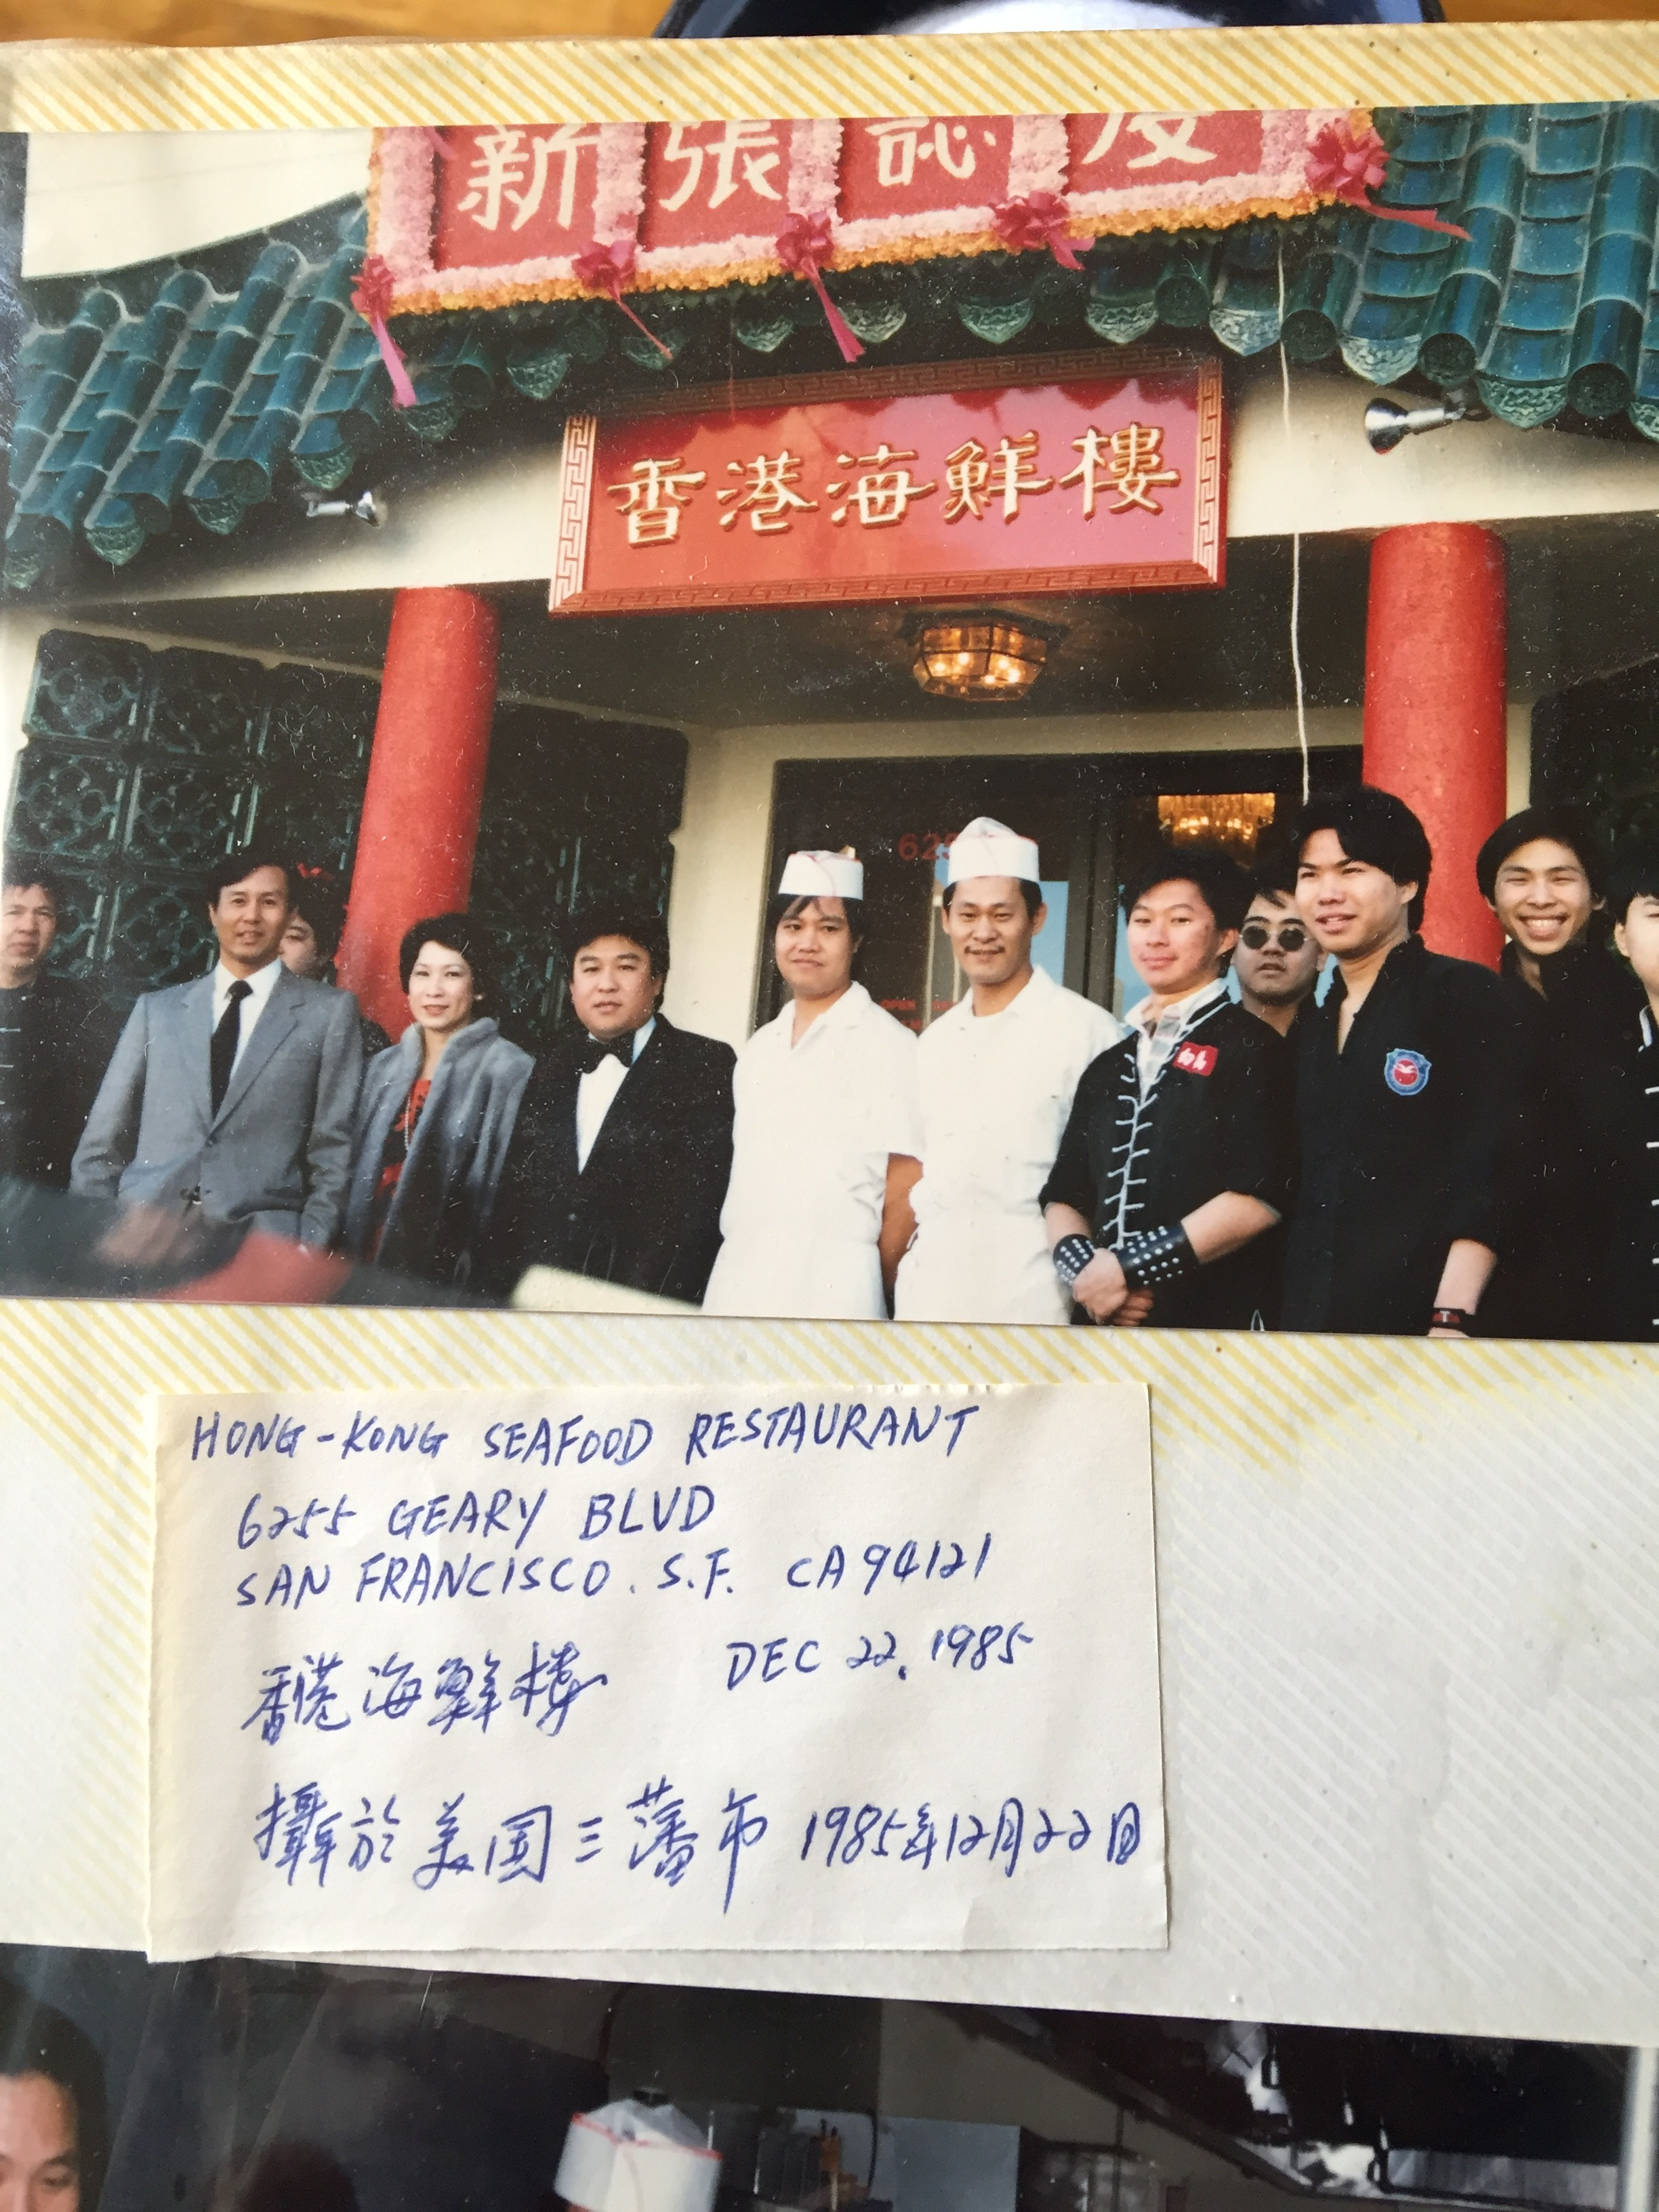 My dad at the opening of the Hong Kong Seafood restaurant in 1985...what's the deal with that facial hair?!?